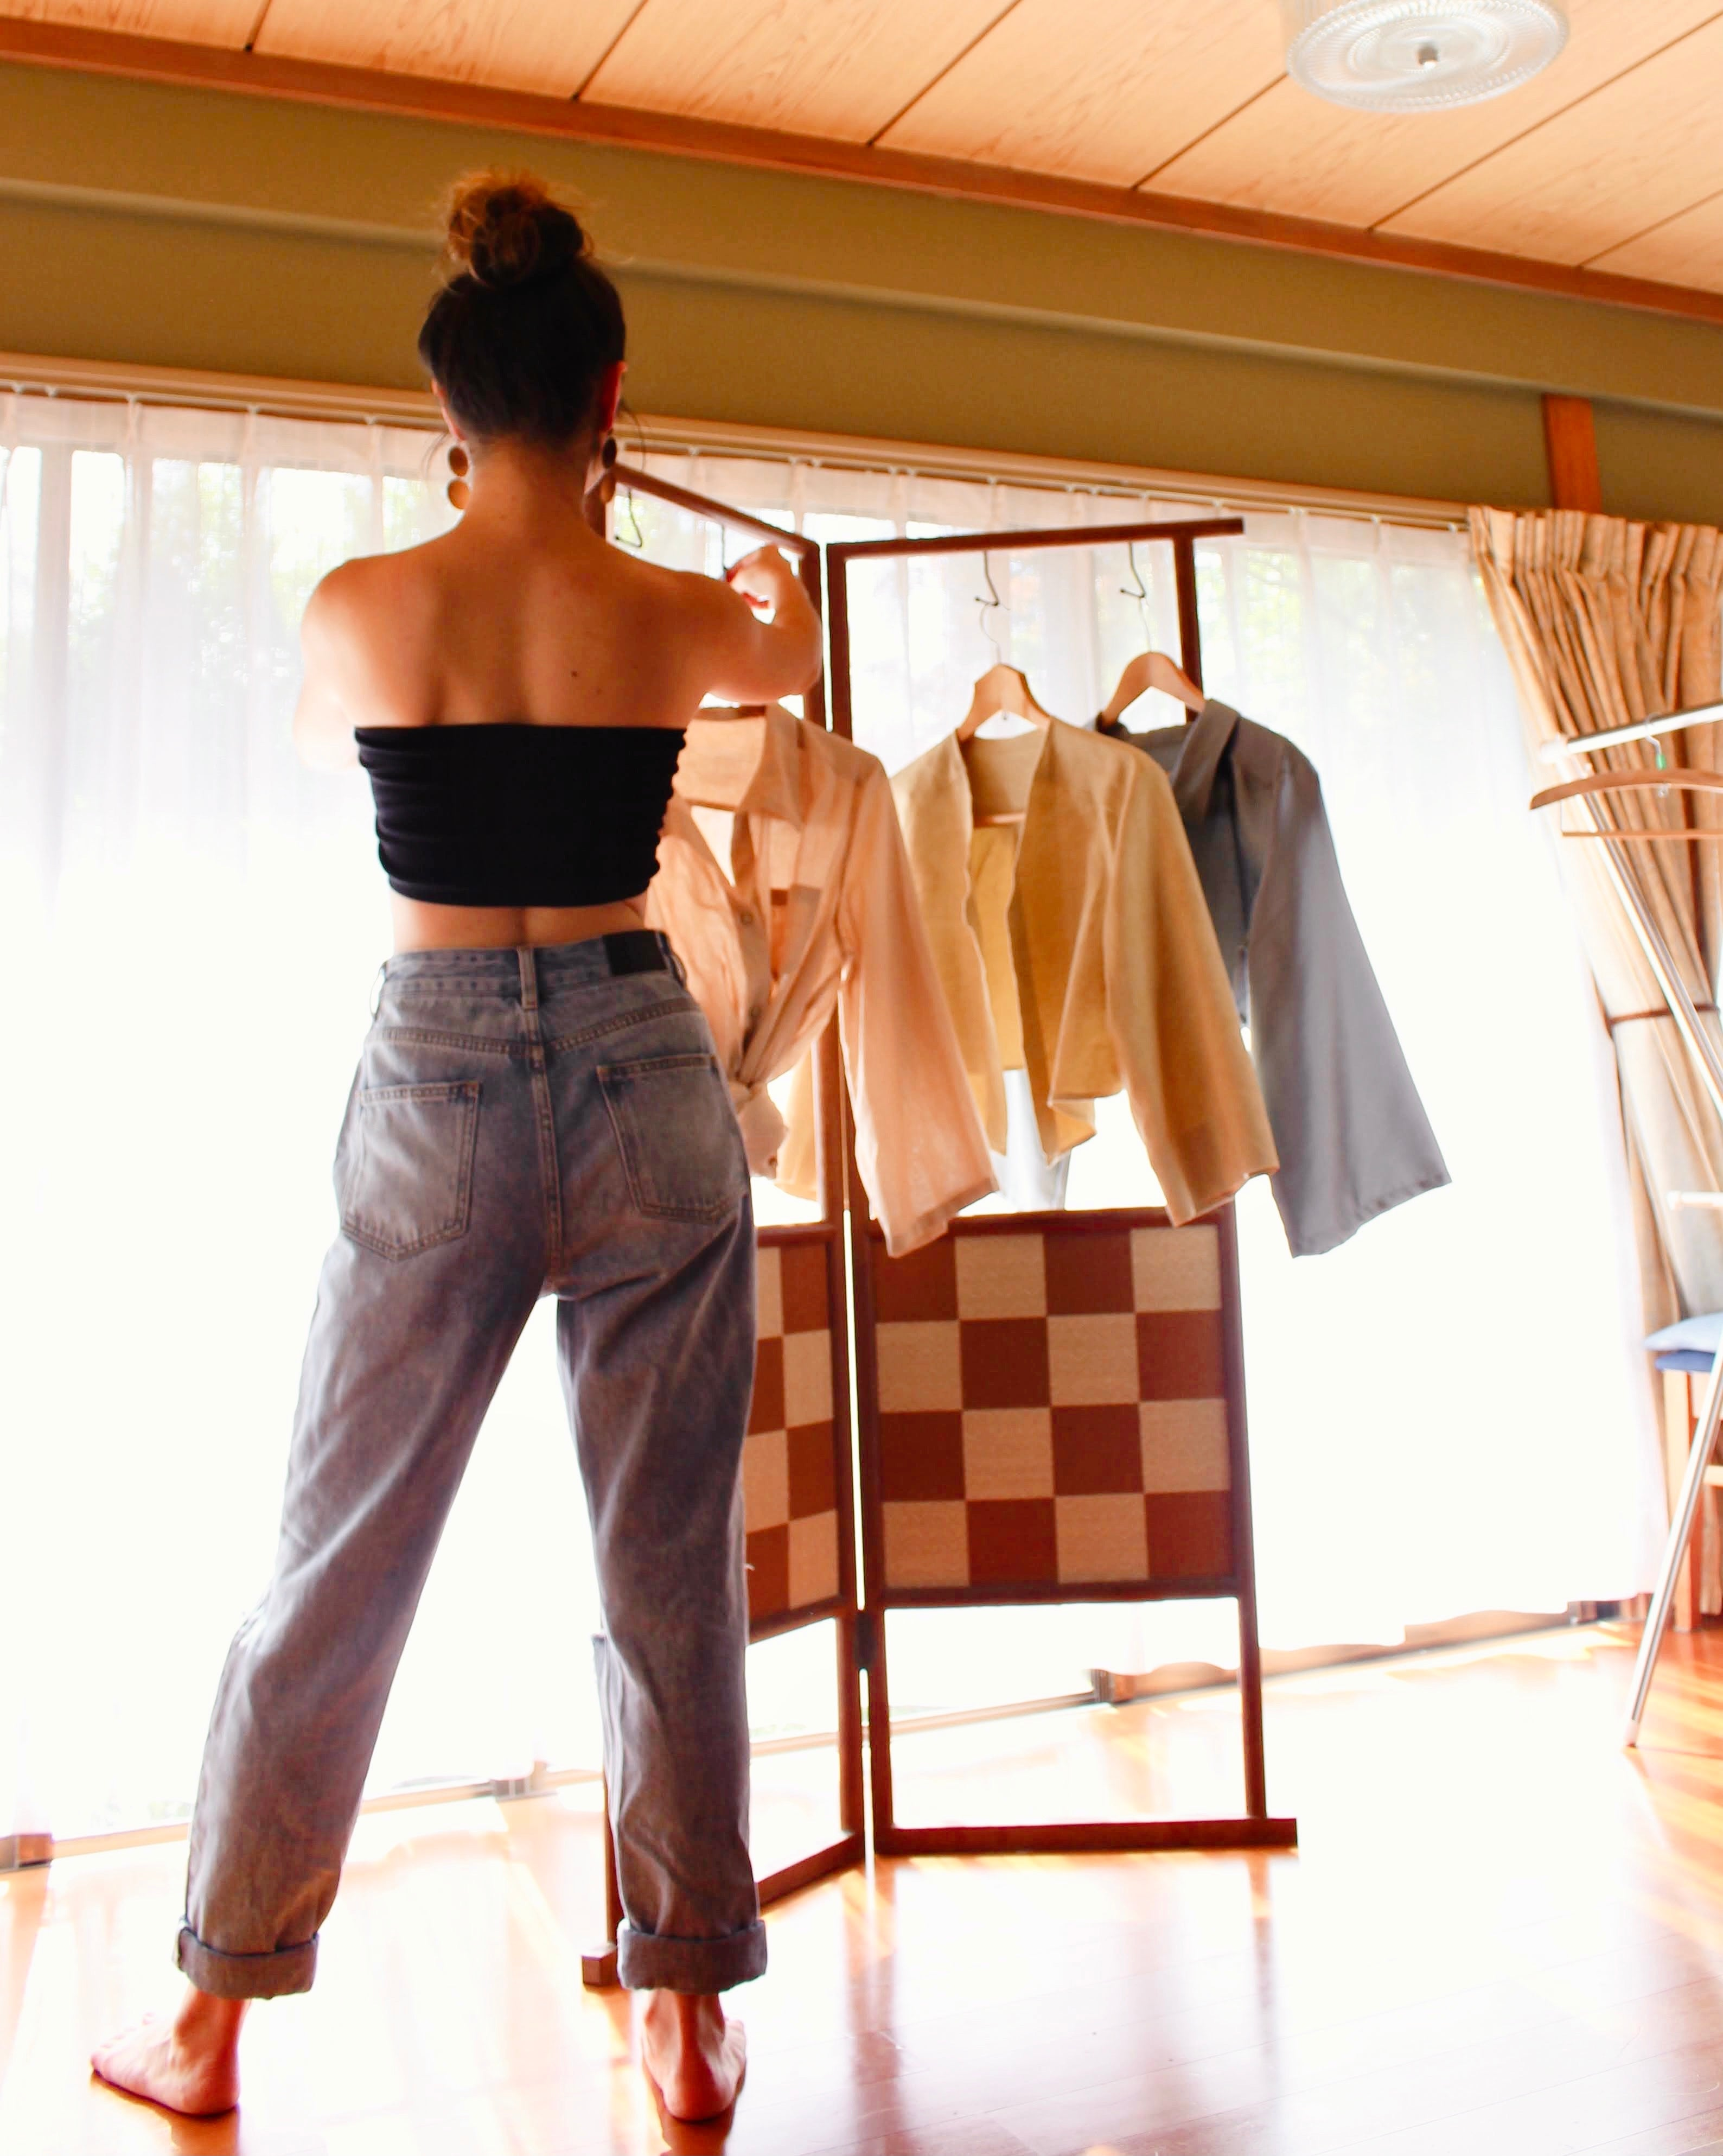 Girl hanging clothes doing laundry